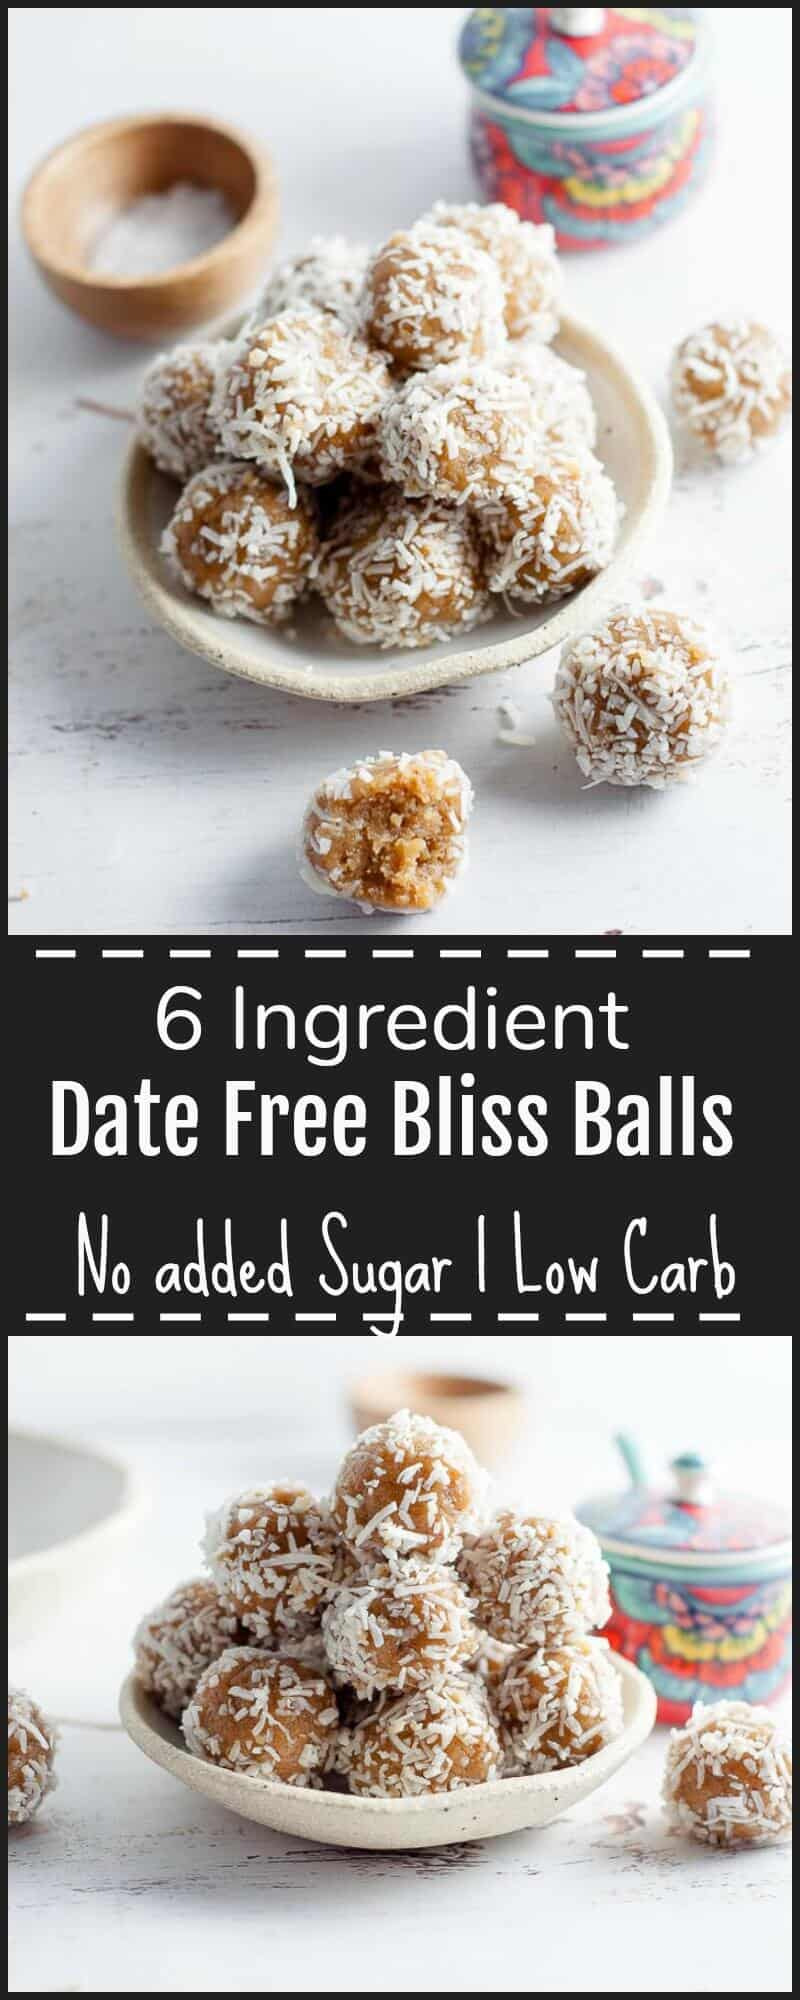 These Date Free Bliss Balls are the perfect easy and healthy snack after the delicious indulgence of Christmas Food. Not too sweet, but still rich with a hint of salty caramel.